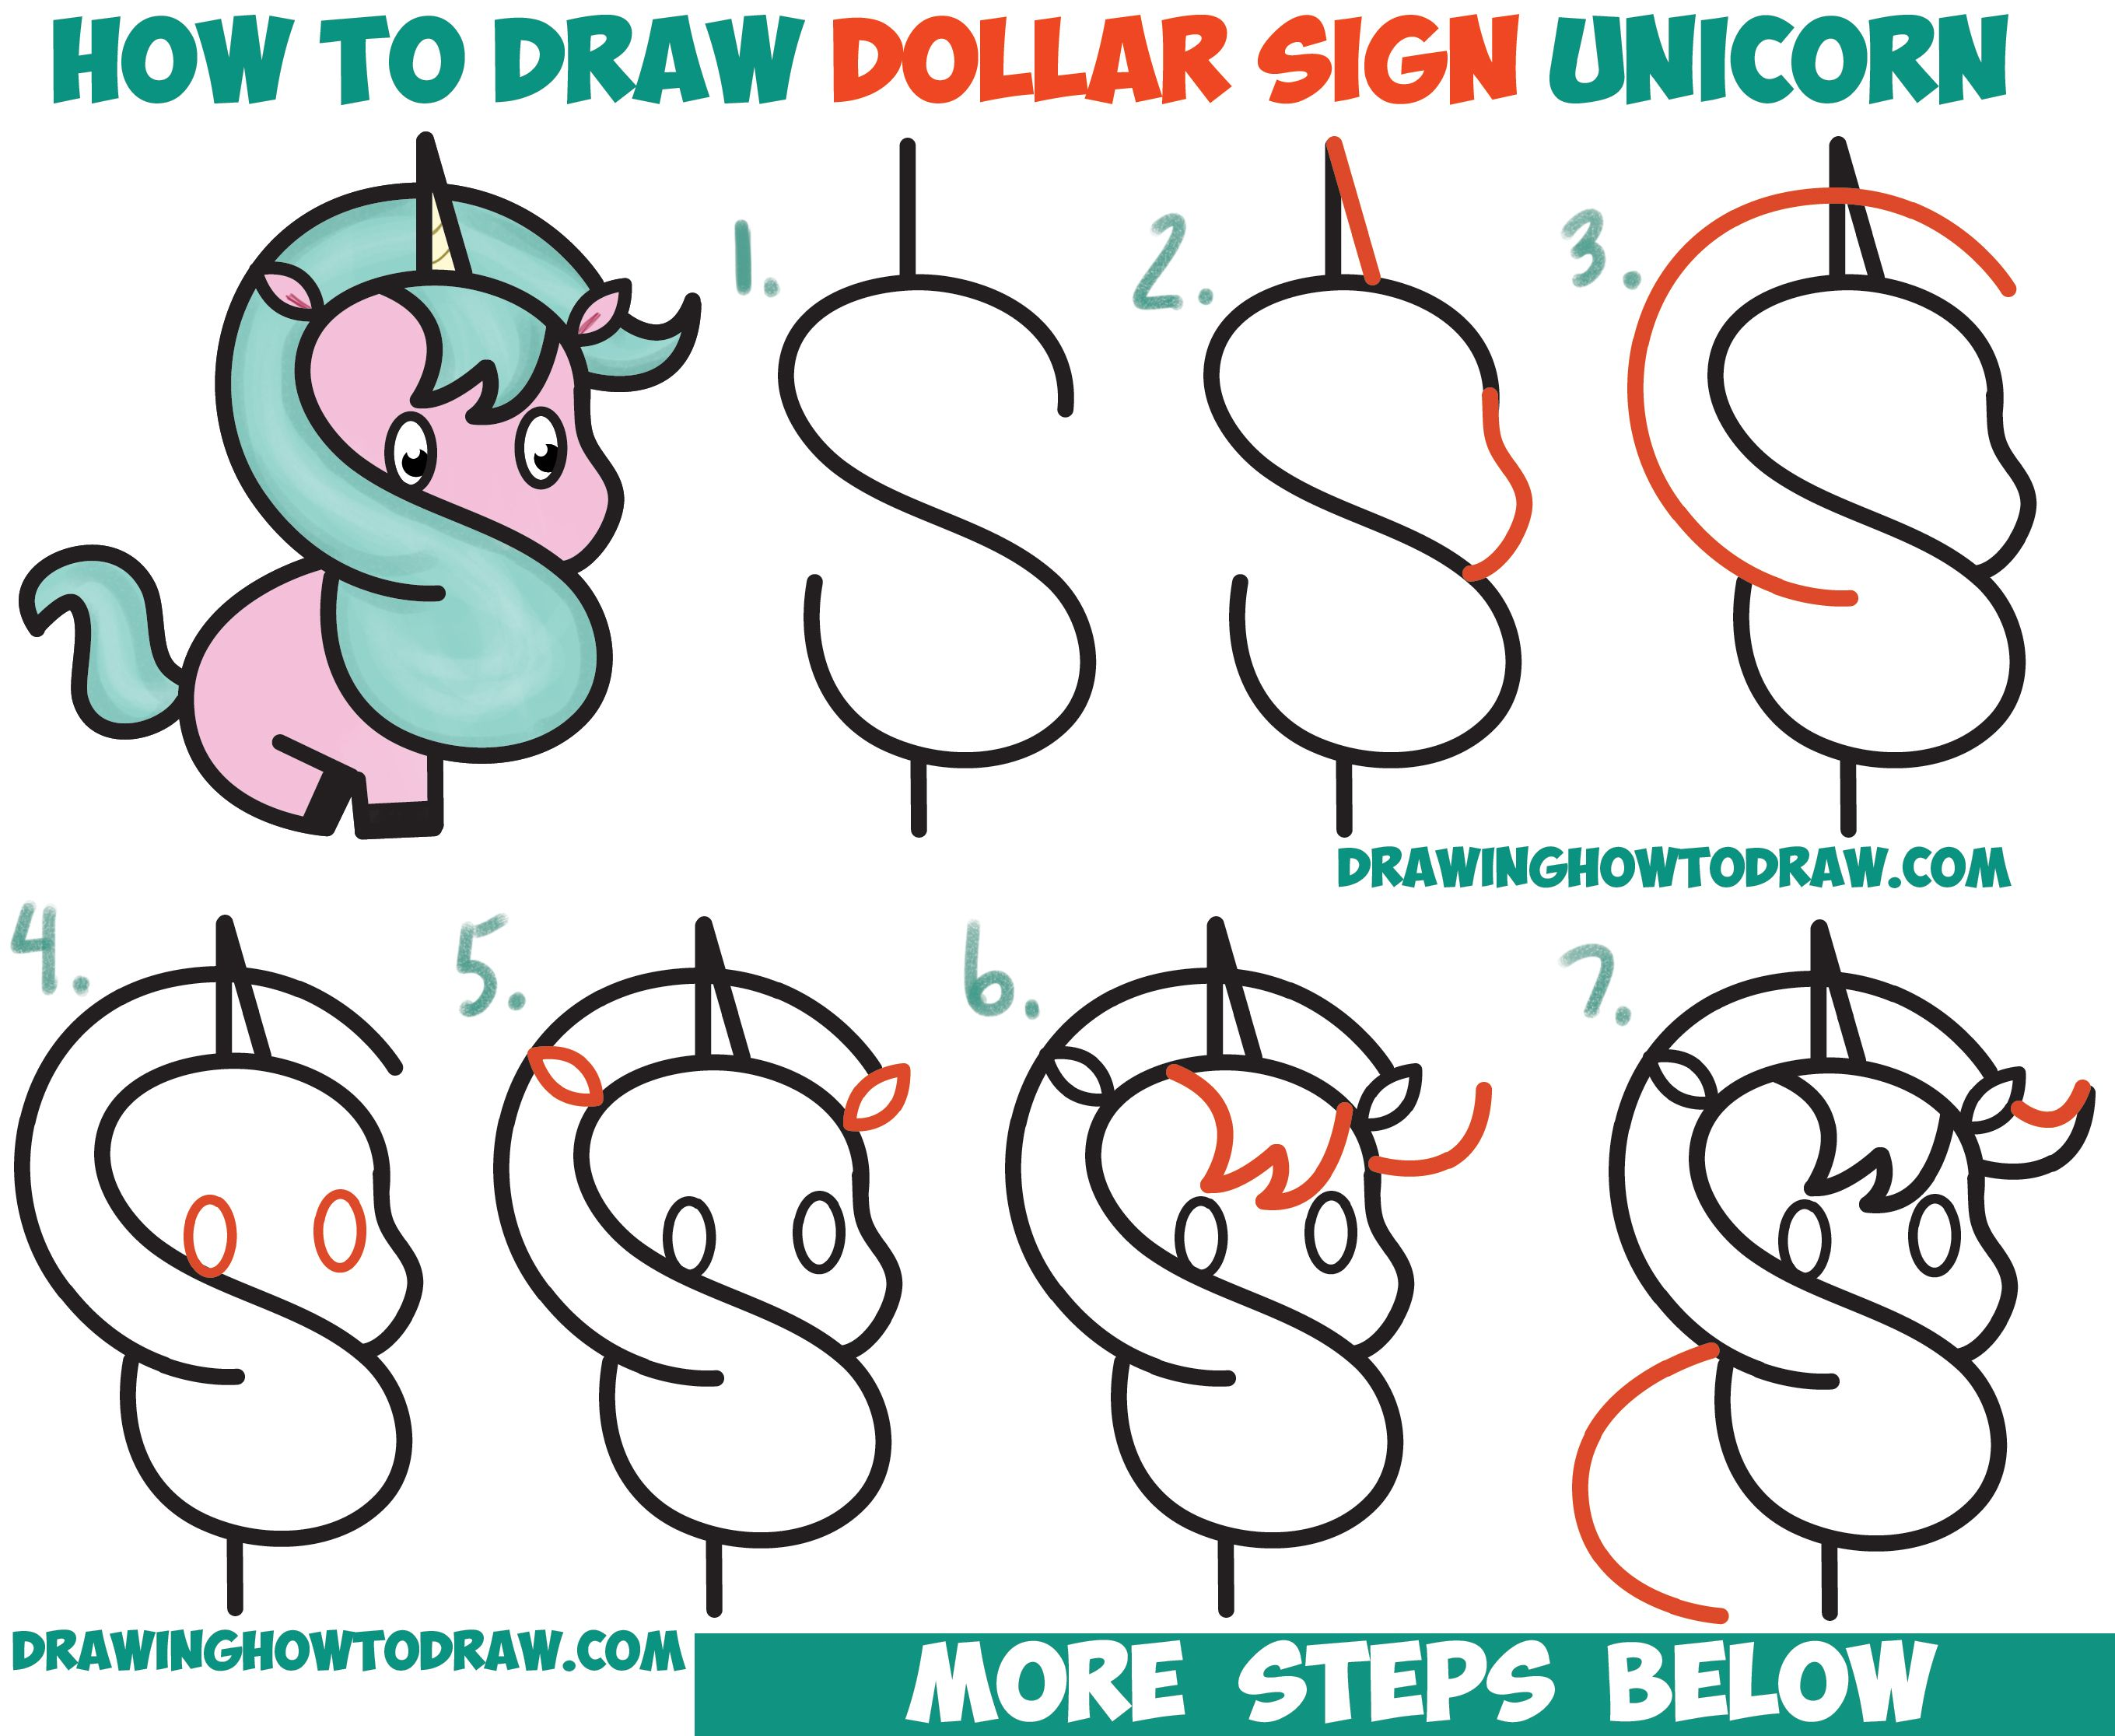 how to draw a cute cartoon unicorn kawaii from a dollar sign